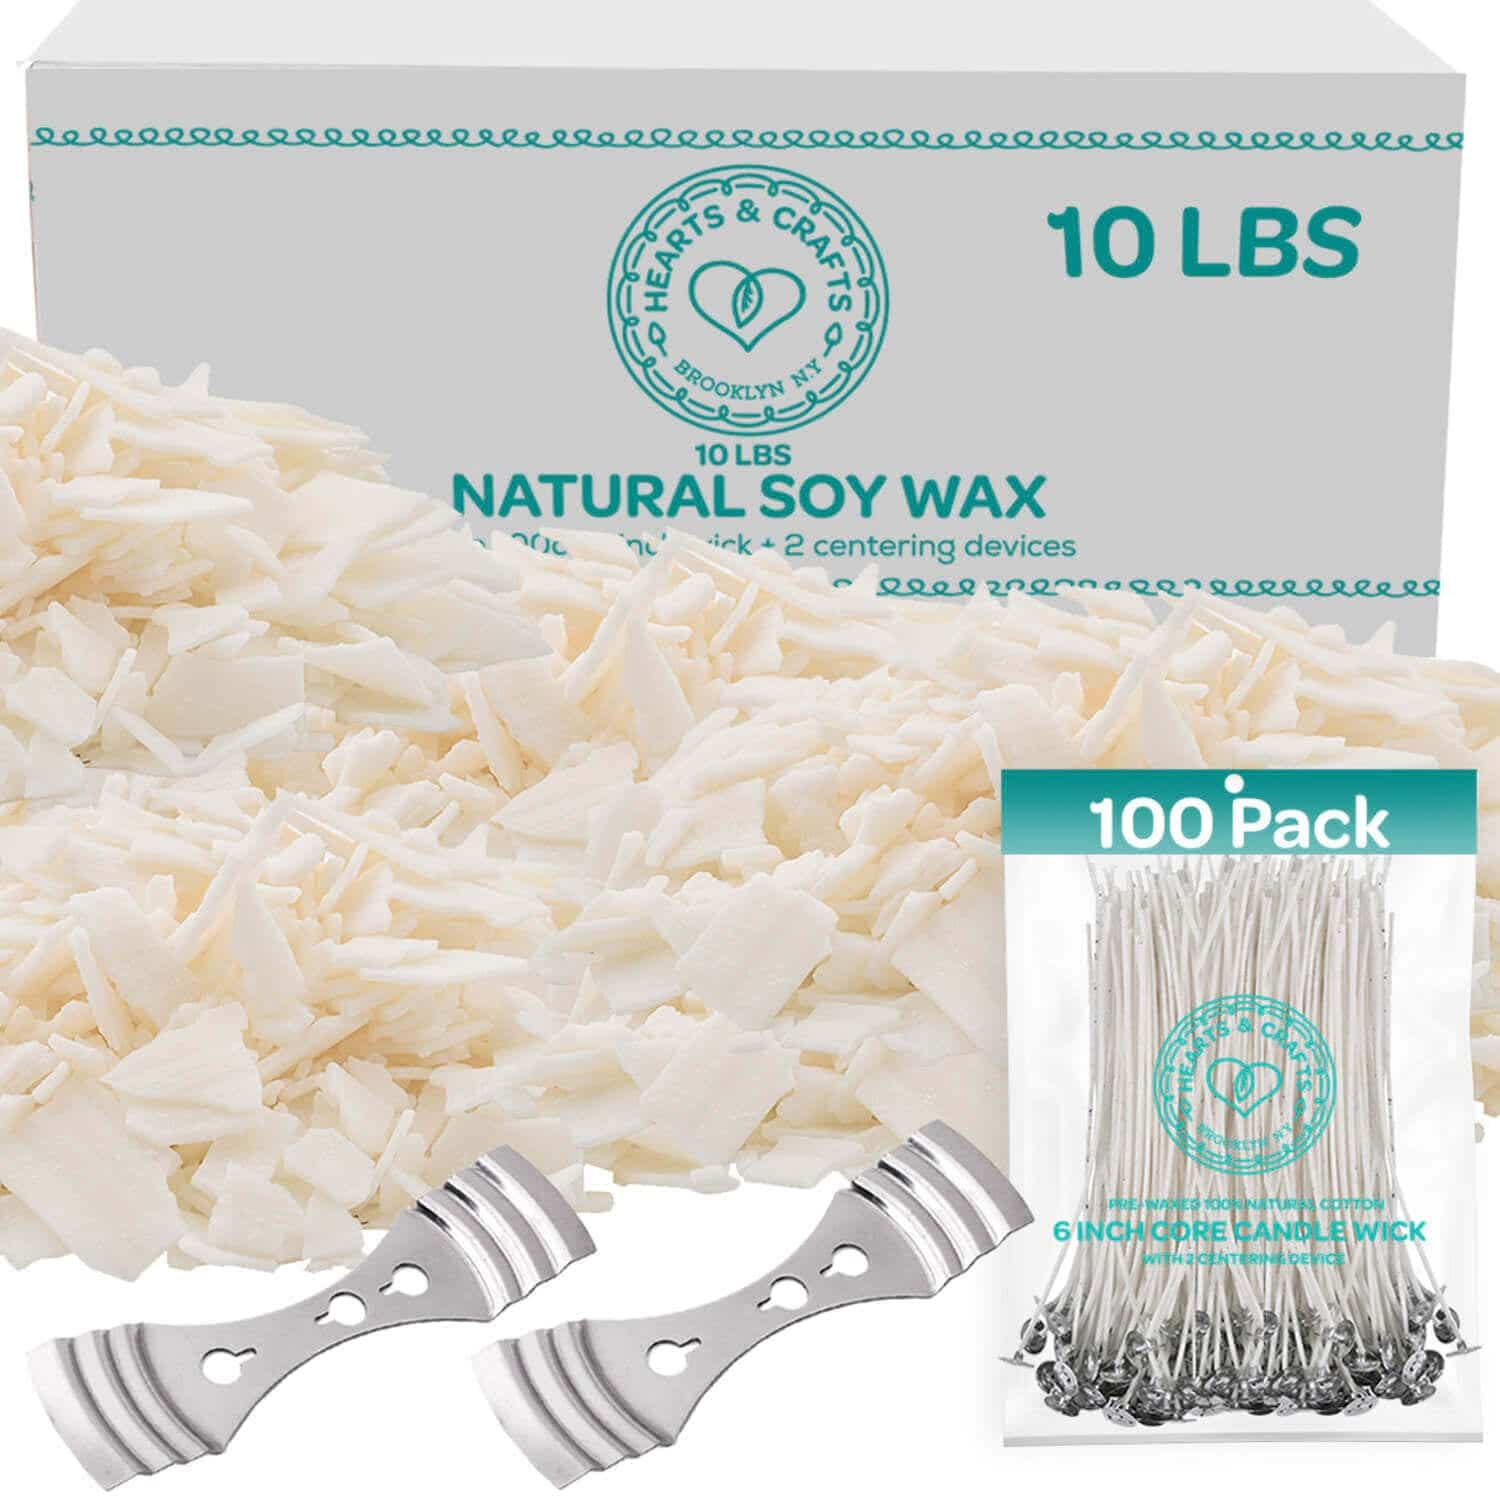 Hearts and Crafts Soy Wax review